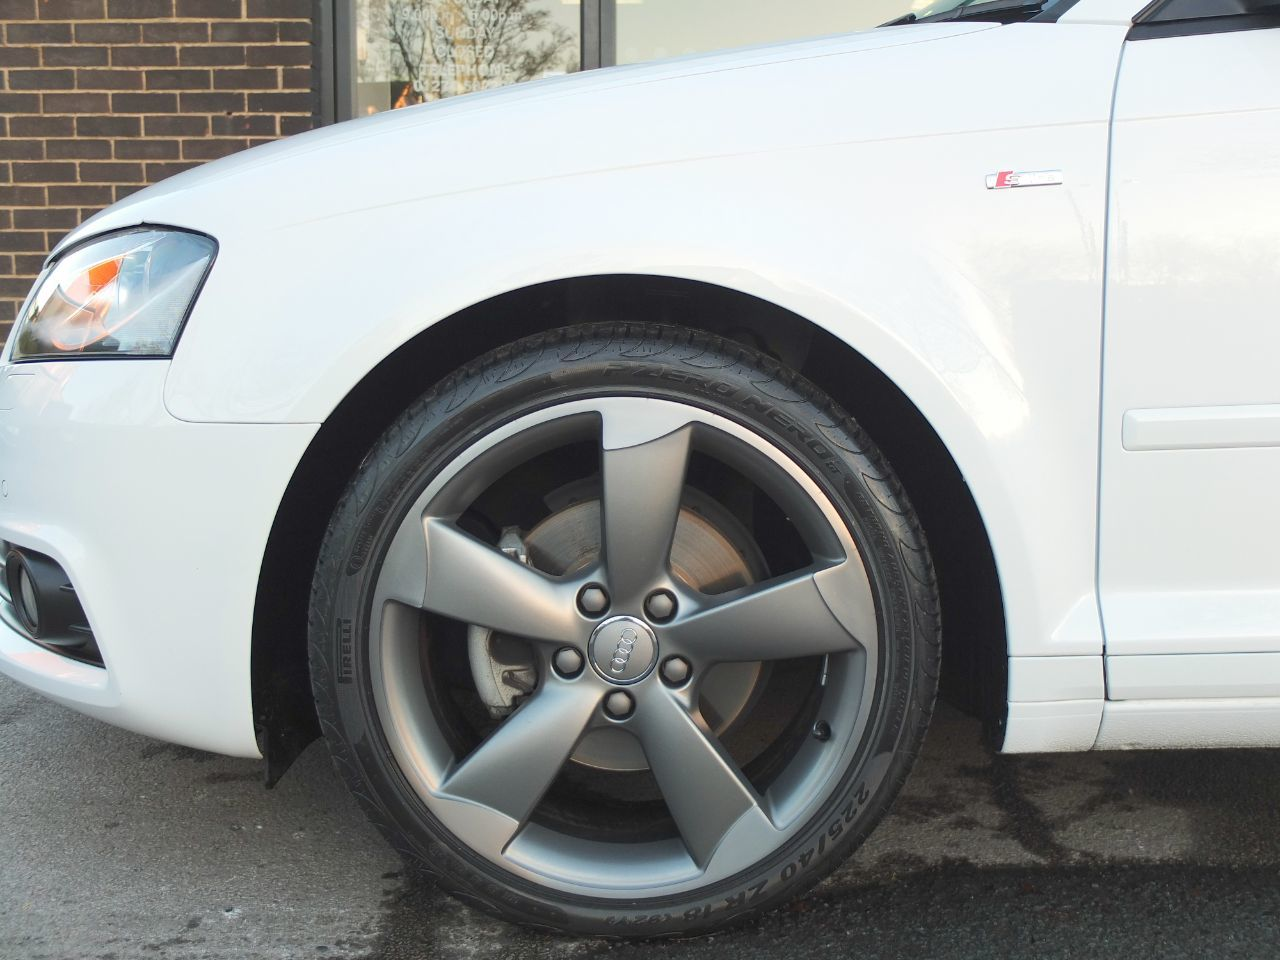 Audi A3 Sportback 2.0 TDI Black Edition S Tronic [Start Stop] Tech Pack +++ Spec 5 door Hatchback Diesel Ibis White